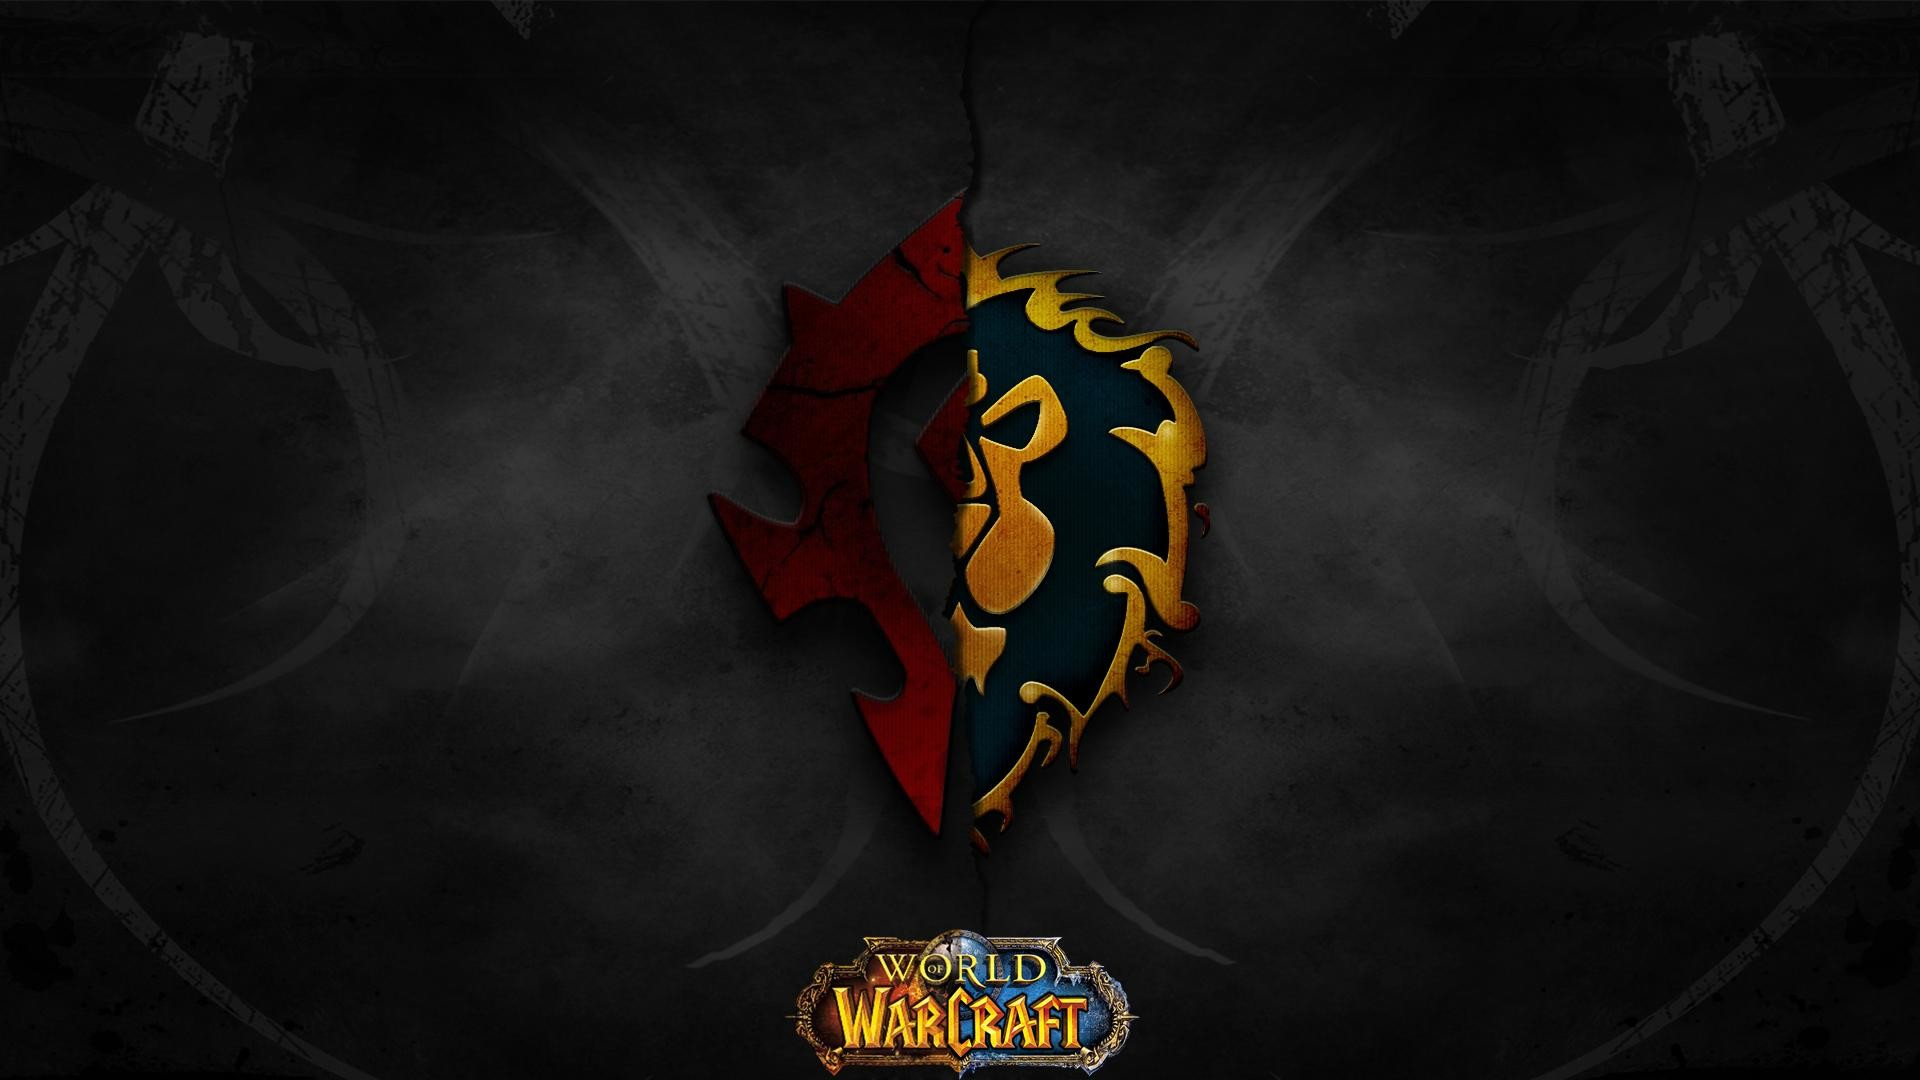 Res: 1920x1080, World Of Warcraft Wallpapers Free